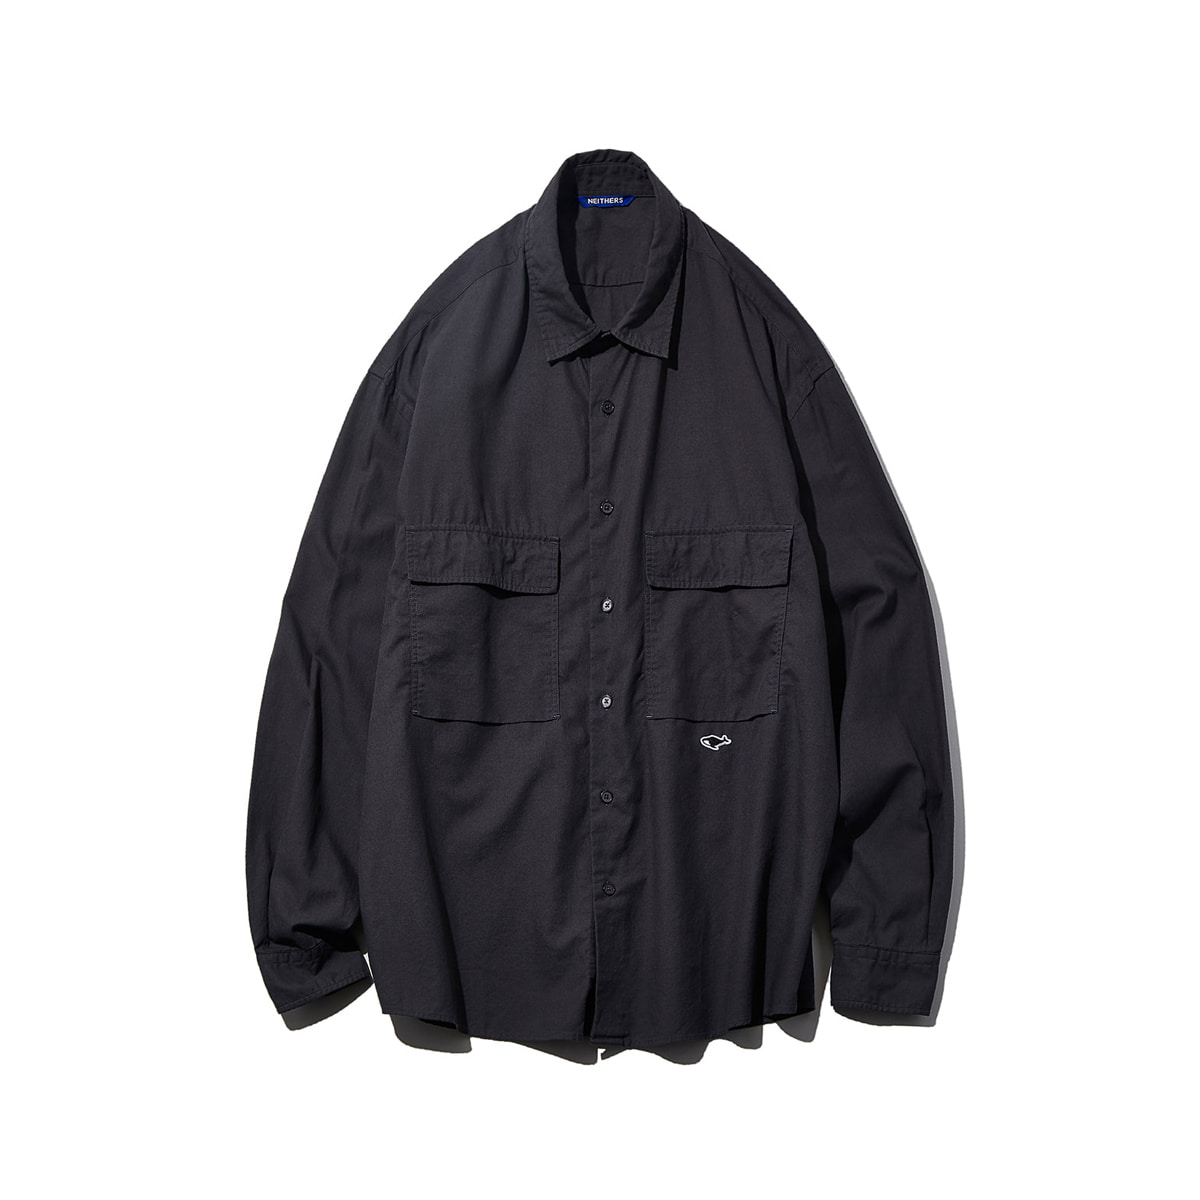 [NEITHERS] 206B-3 2-POCKET WIDE SHIRT 'CHARCOAL'